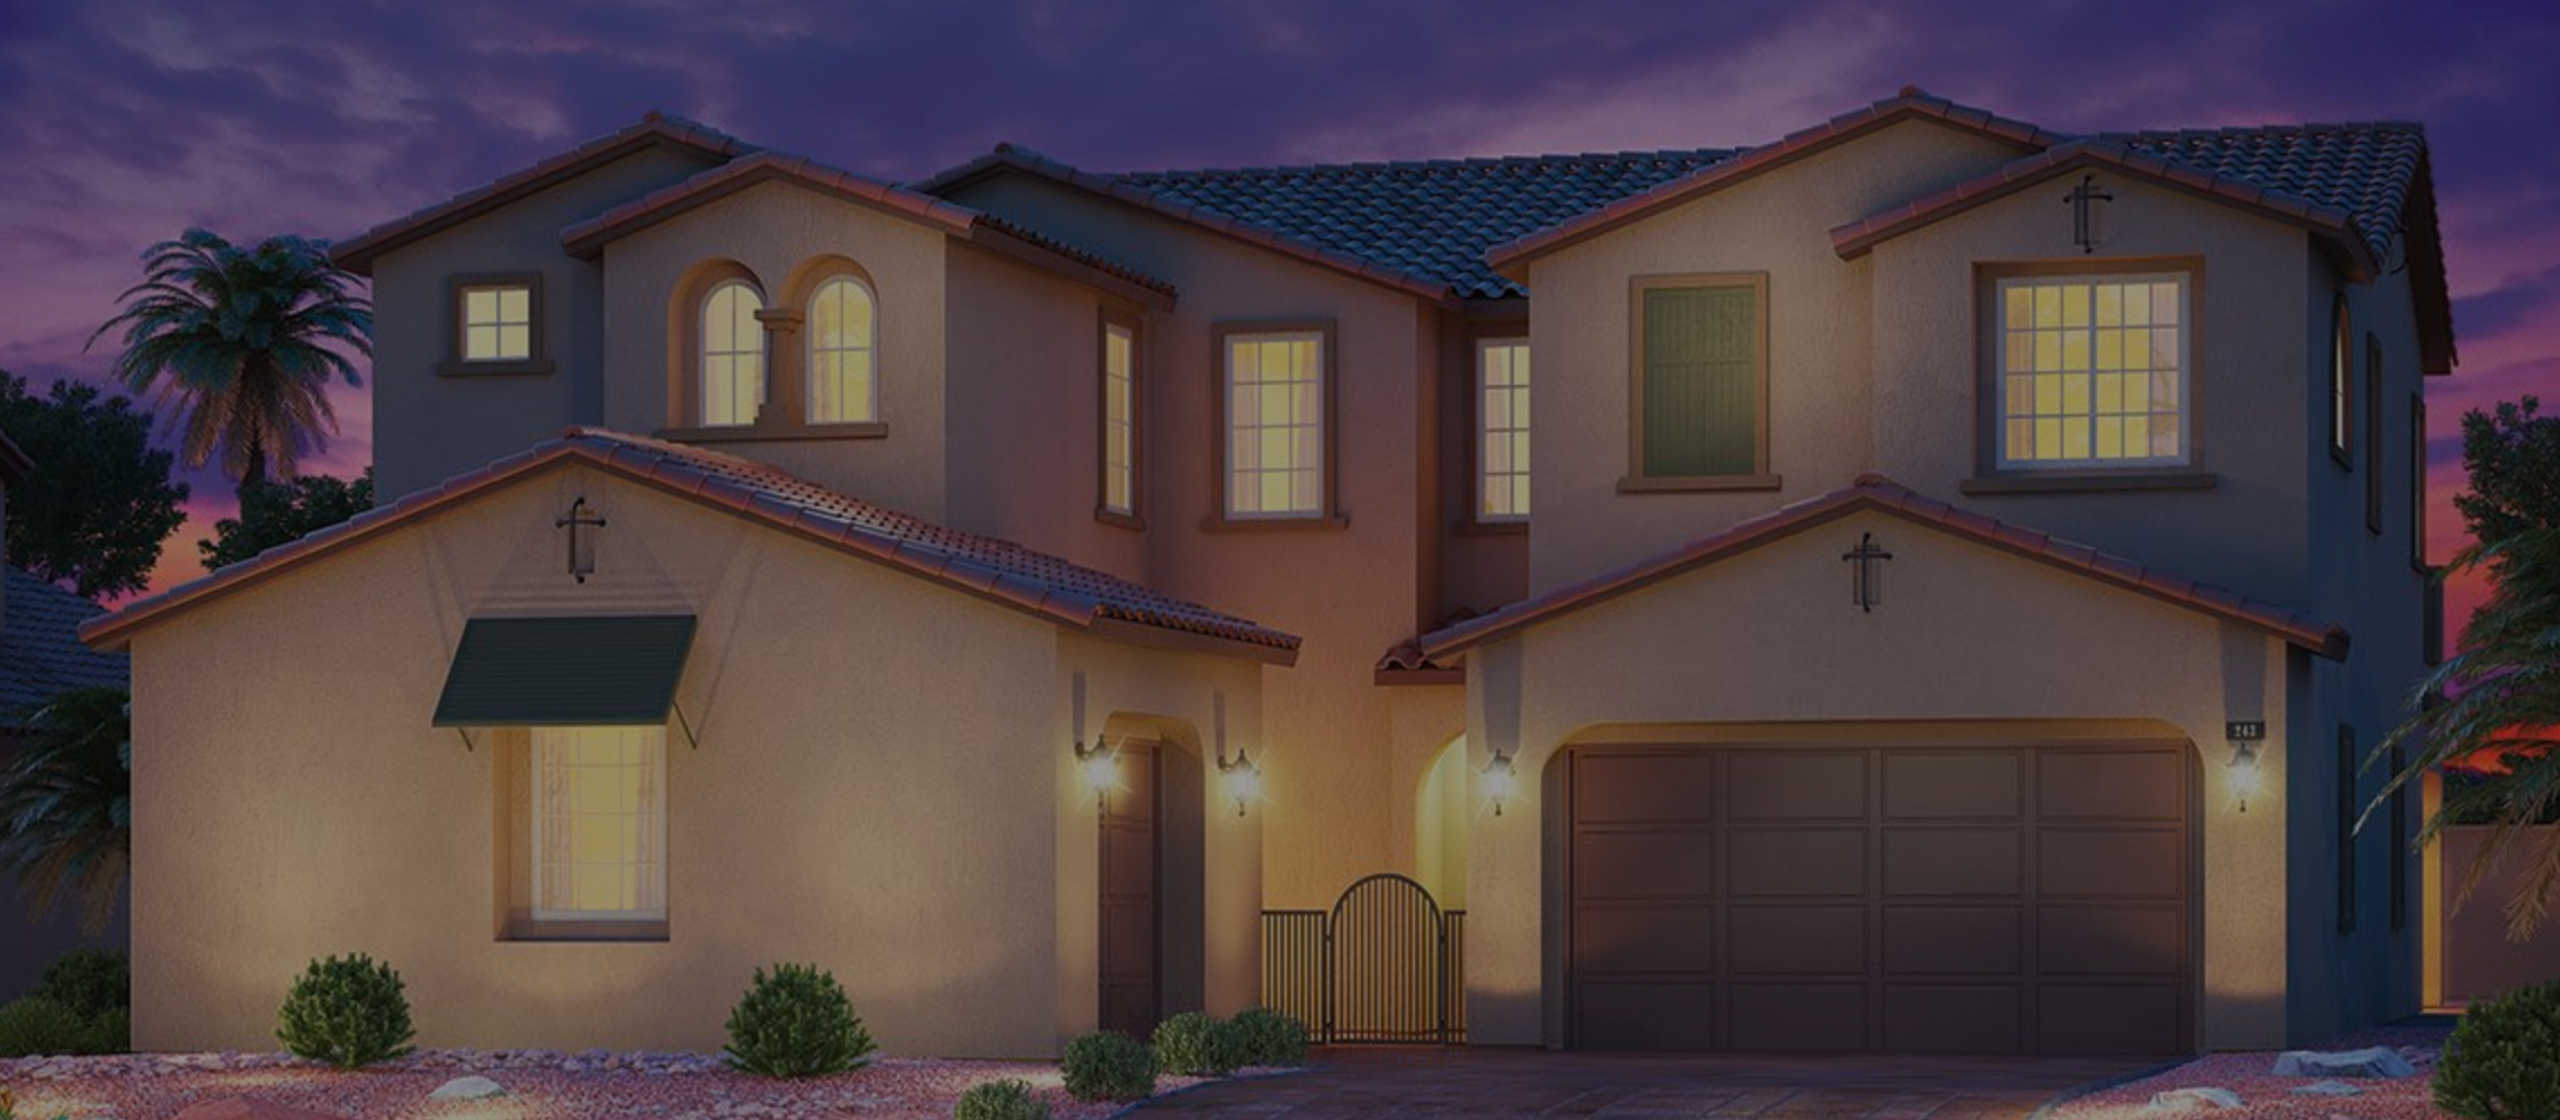 Home sales continue strong in Southern Nevada